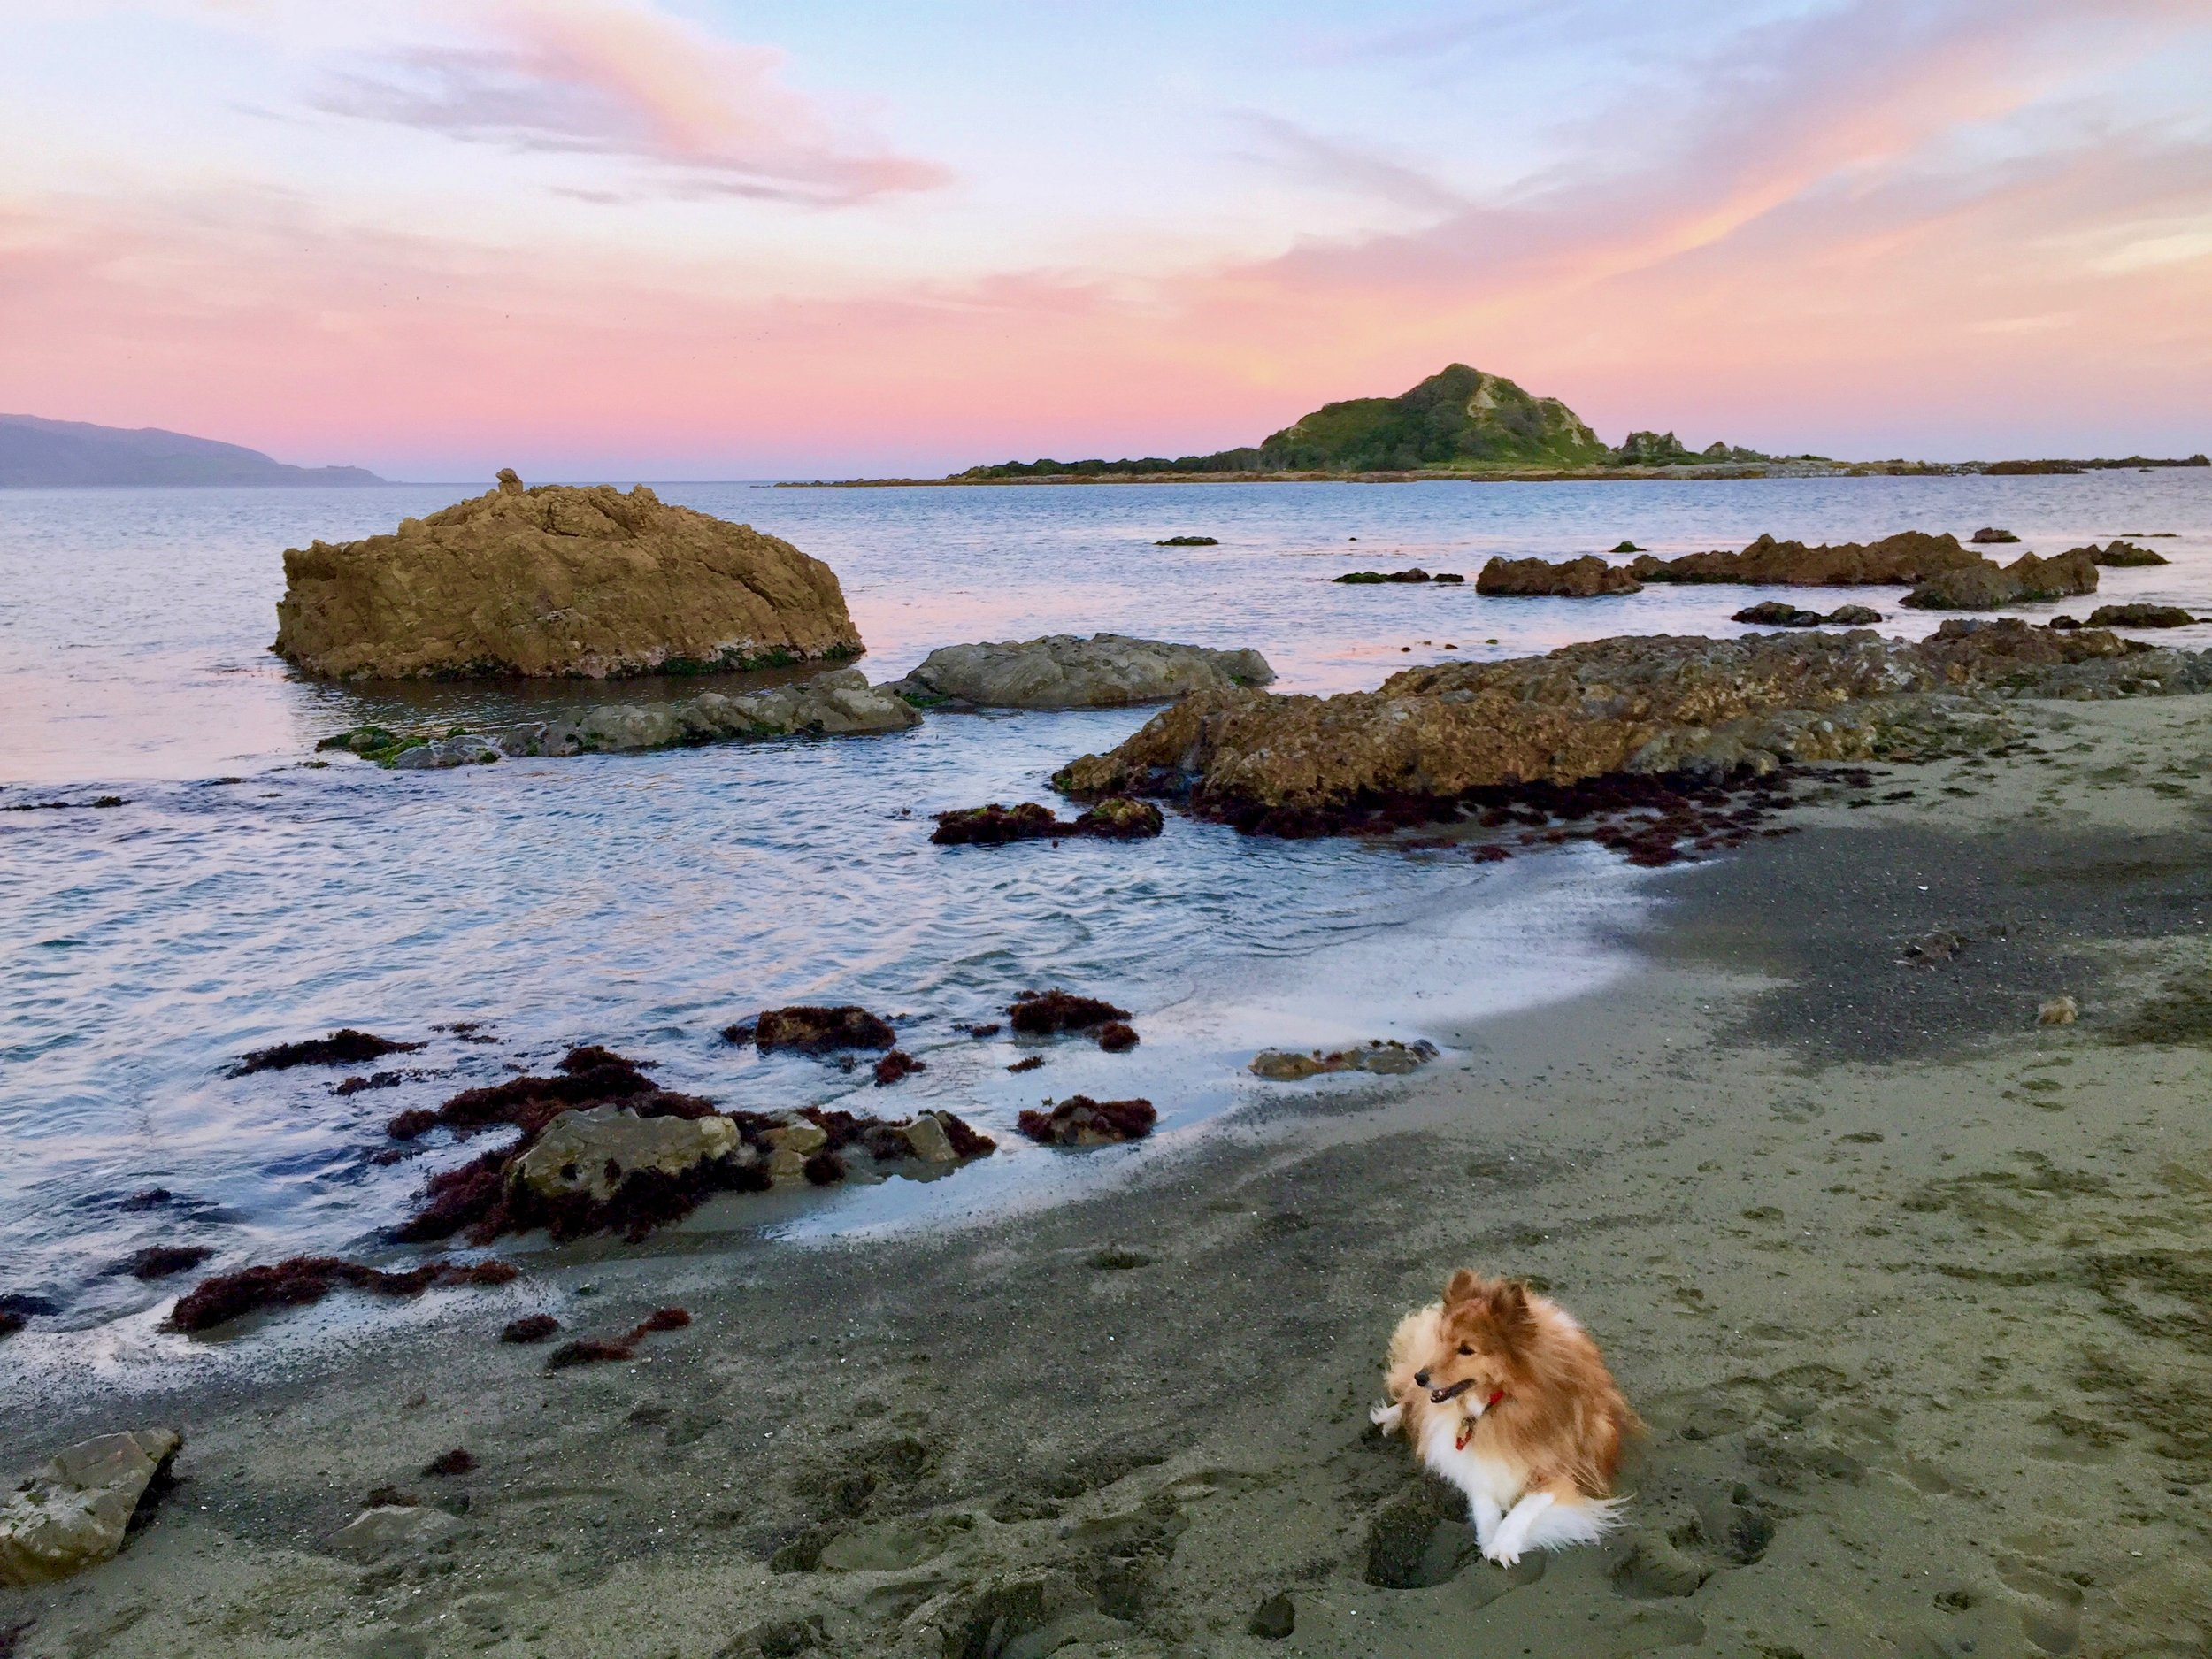 Alfie the Sheltie keeping a characteristic eye on everything at Island Bay beach, as the sun was setting.